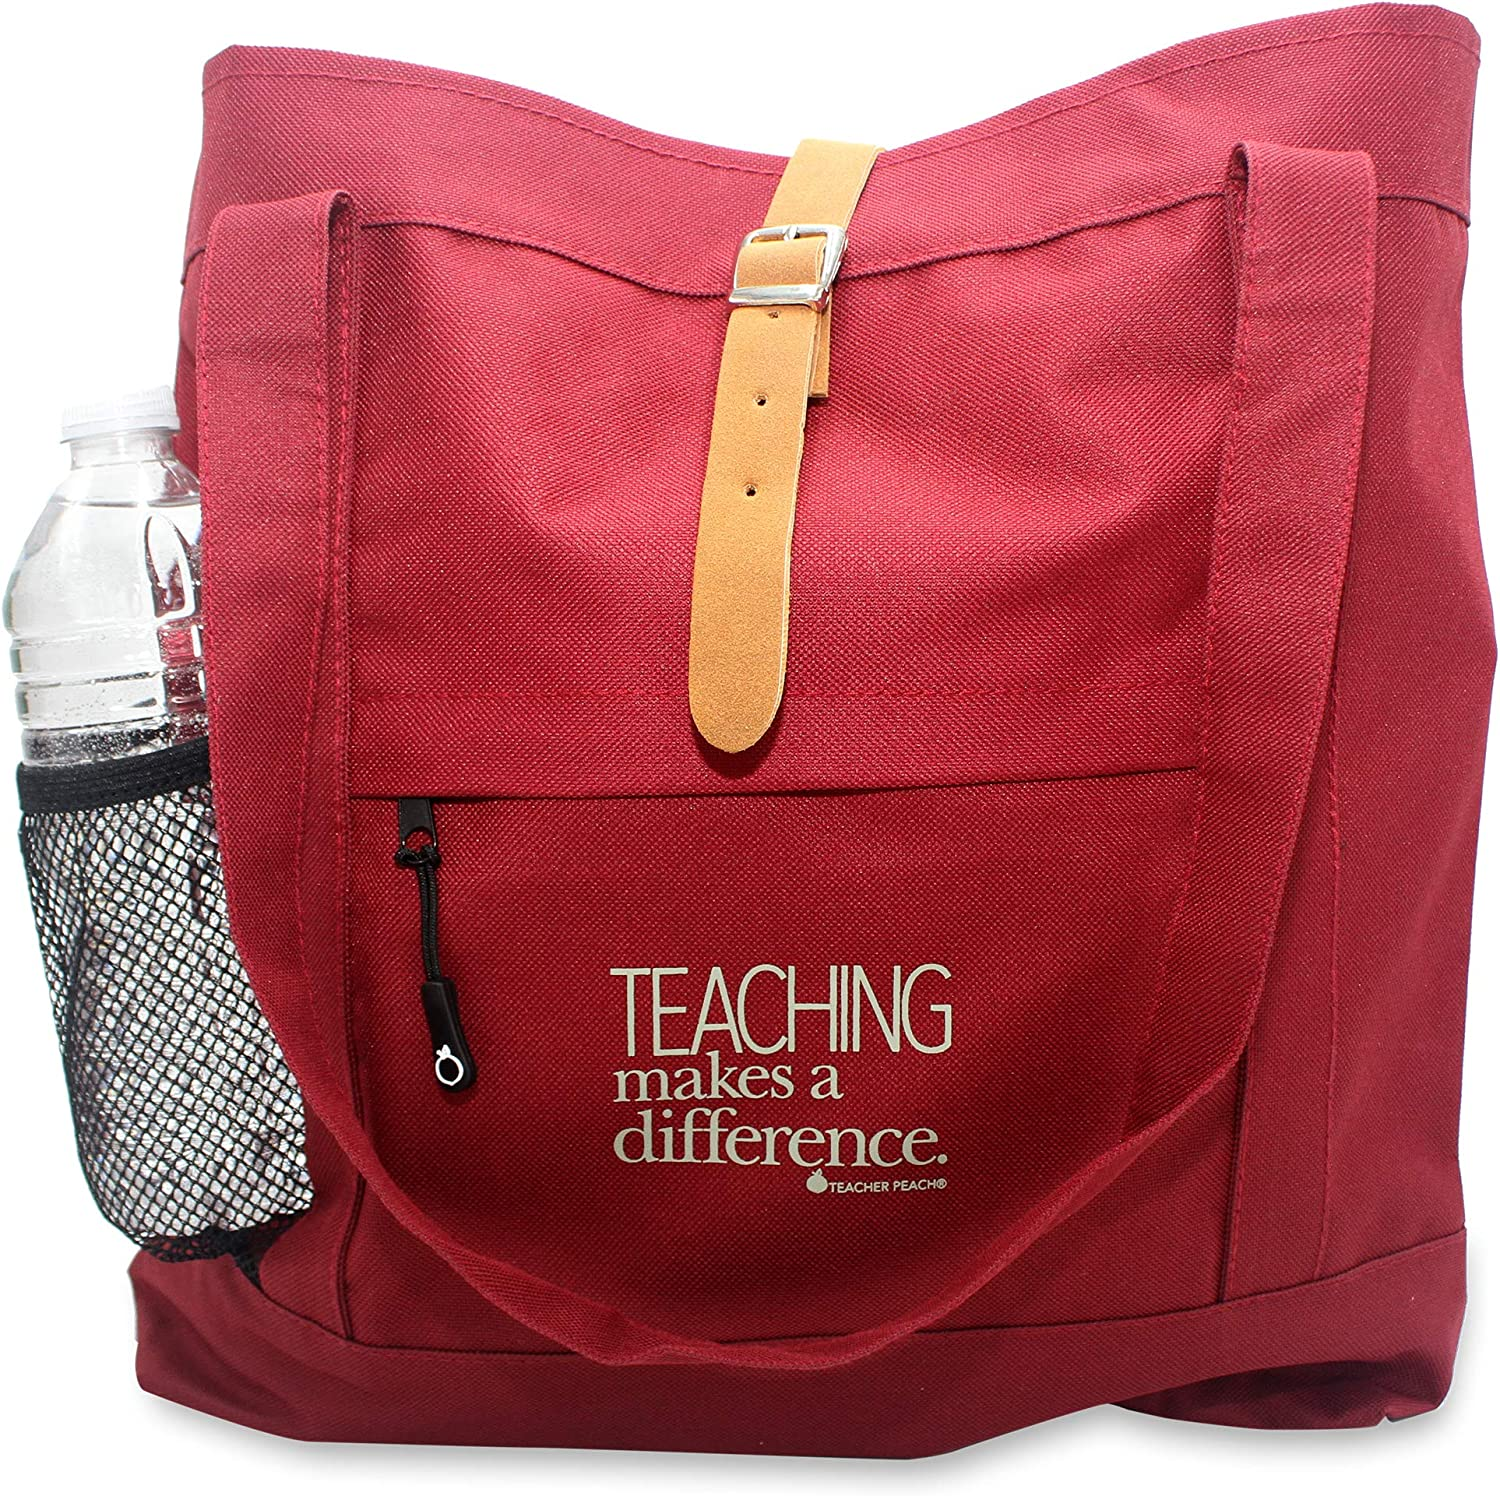 Teaching makes a difference bag